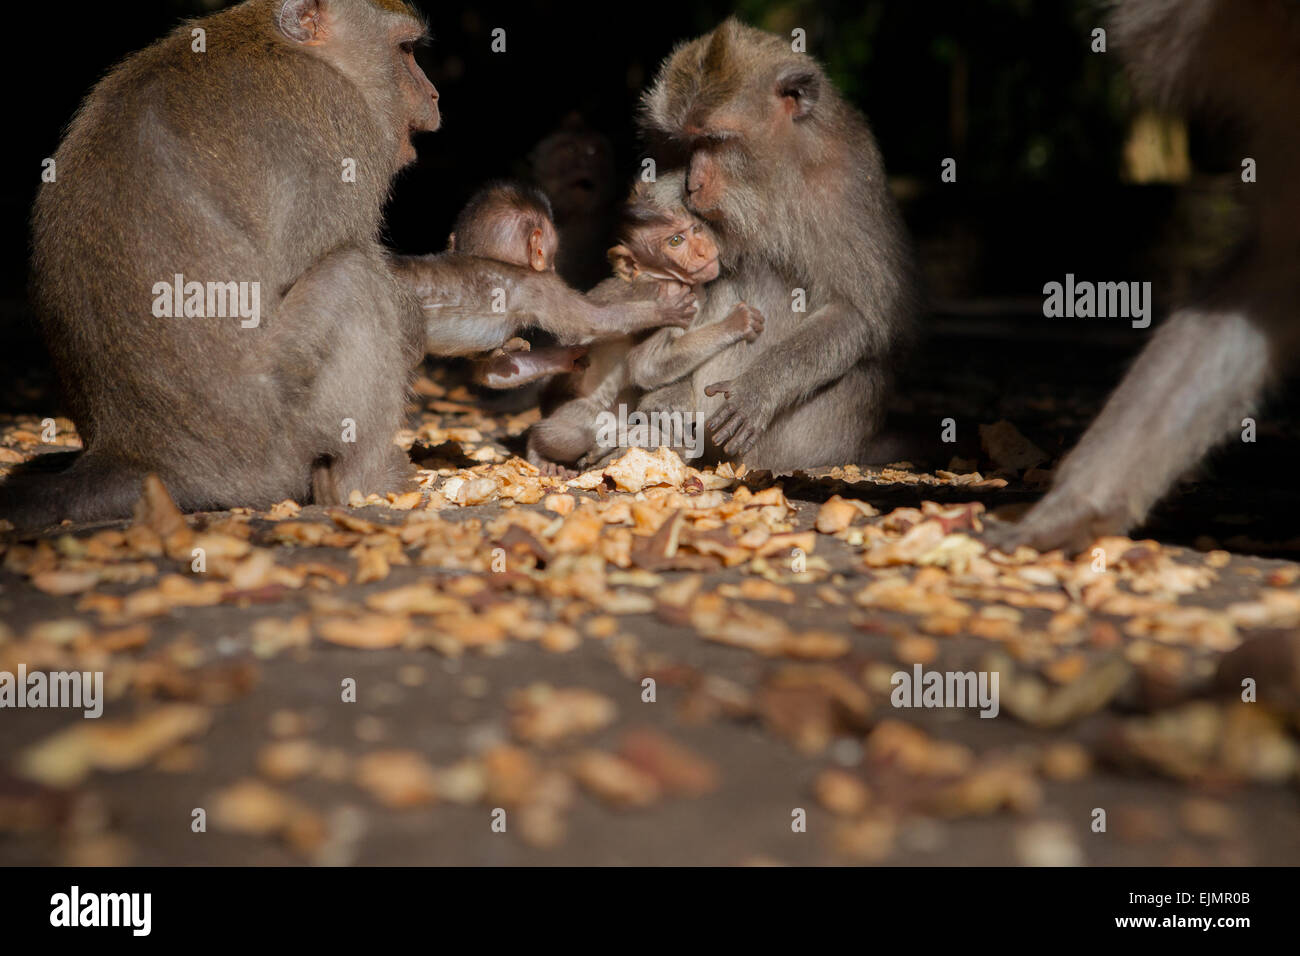 Long-tailed macaques (Macaca fascicularis) at Monkey Forest, Ubud, Bali, Indonesia. - Stock Image